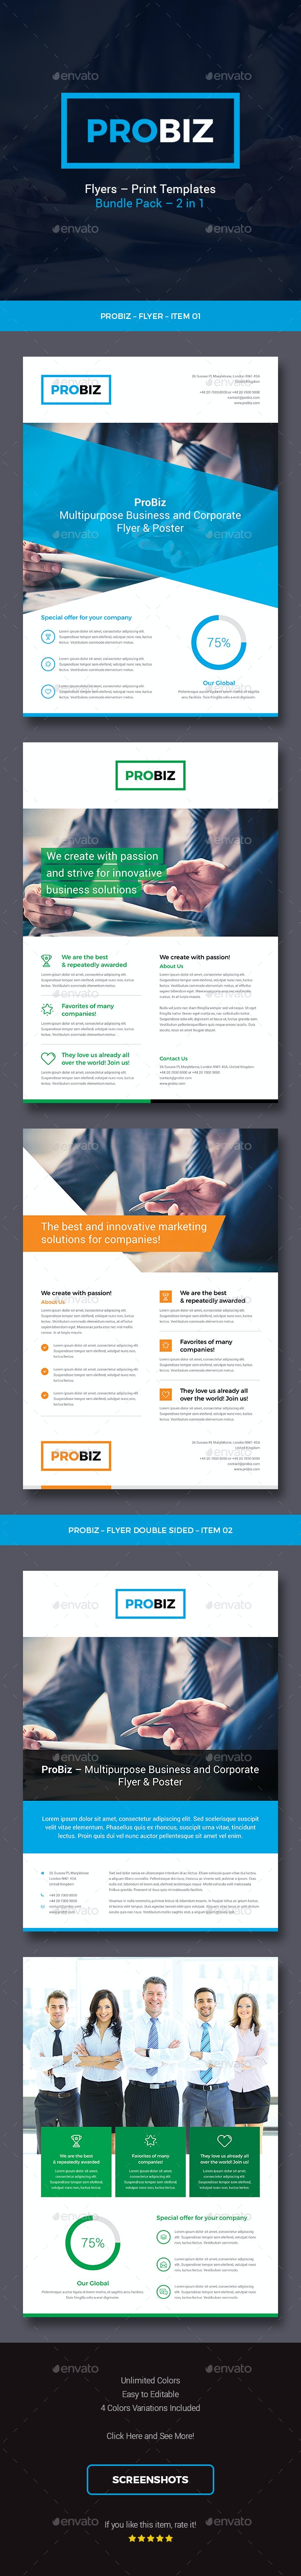 ProBiz – Business and Corporate Flyers Bundle Pack - Corporate Flyers